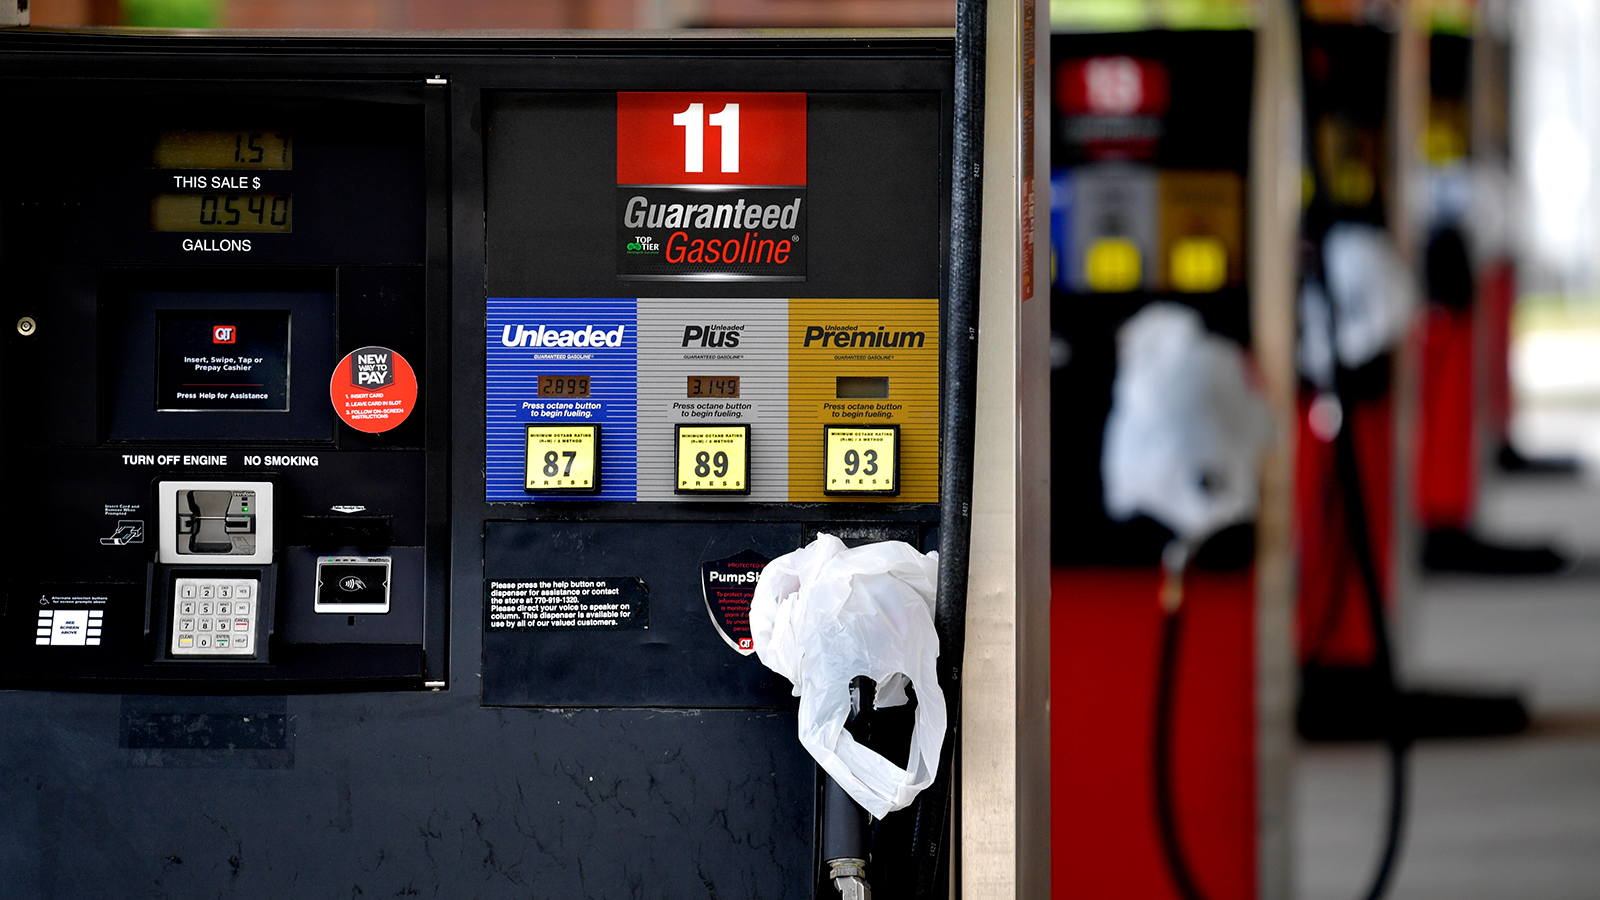 A QuickTrip connivence store has bags on their pumps as the station has no gas on Tuesday, May 11, in Kennesaw, Georgia.